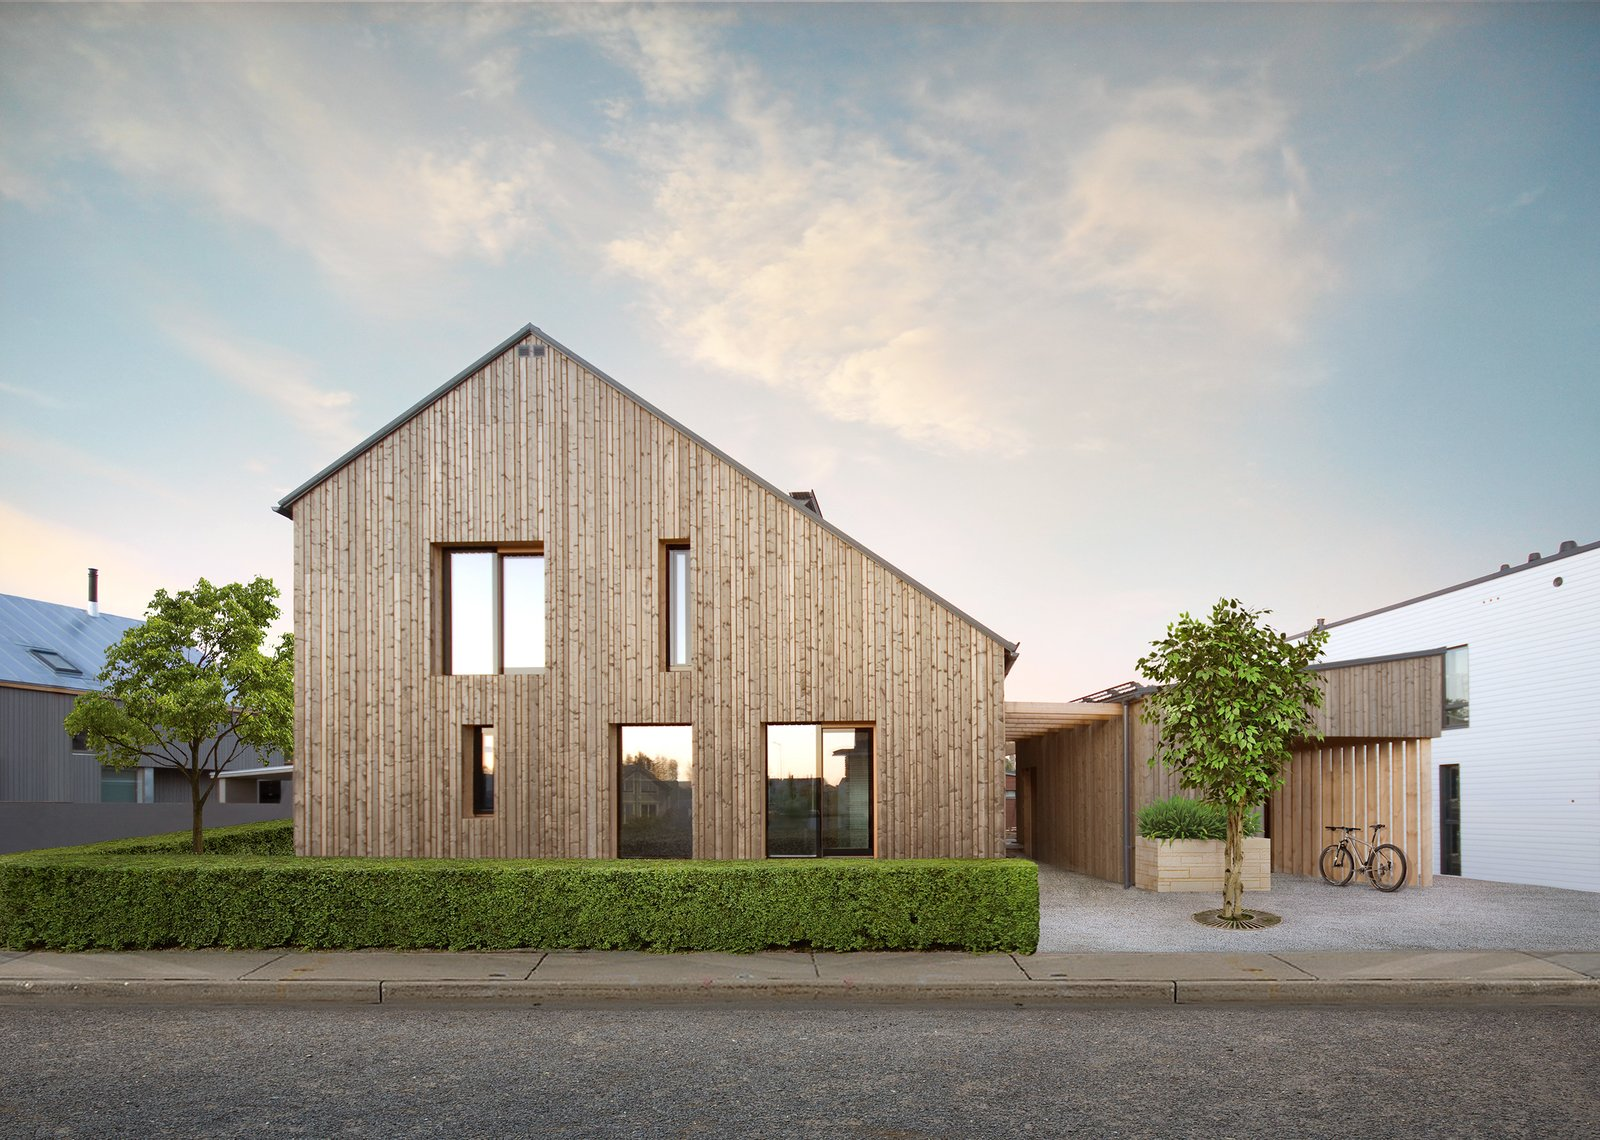 Architects Jaakko and Elizaveta Parkkonen designed and built Savukvartsi as their own city home, which they share with their parents and children.